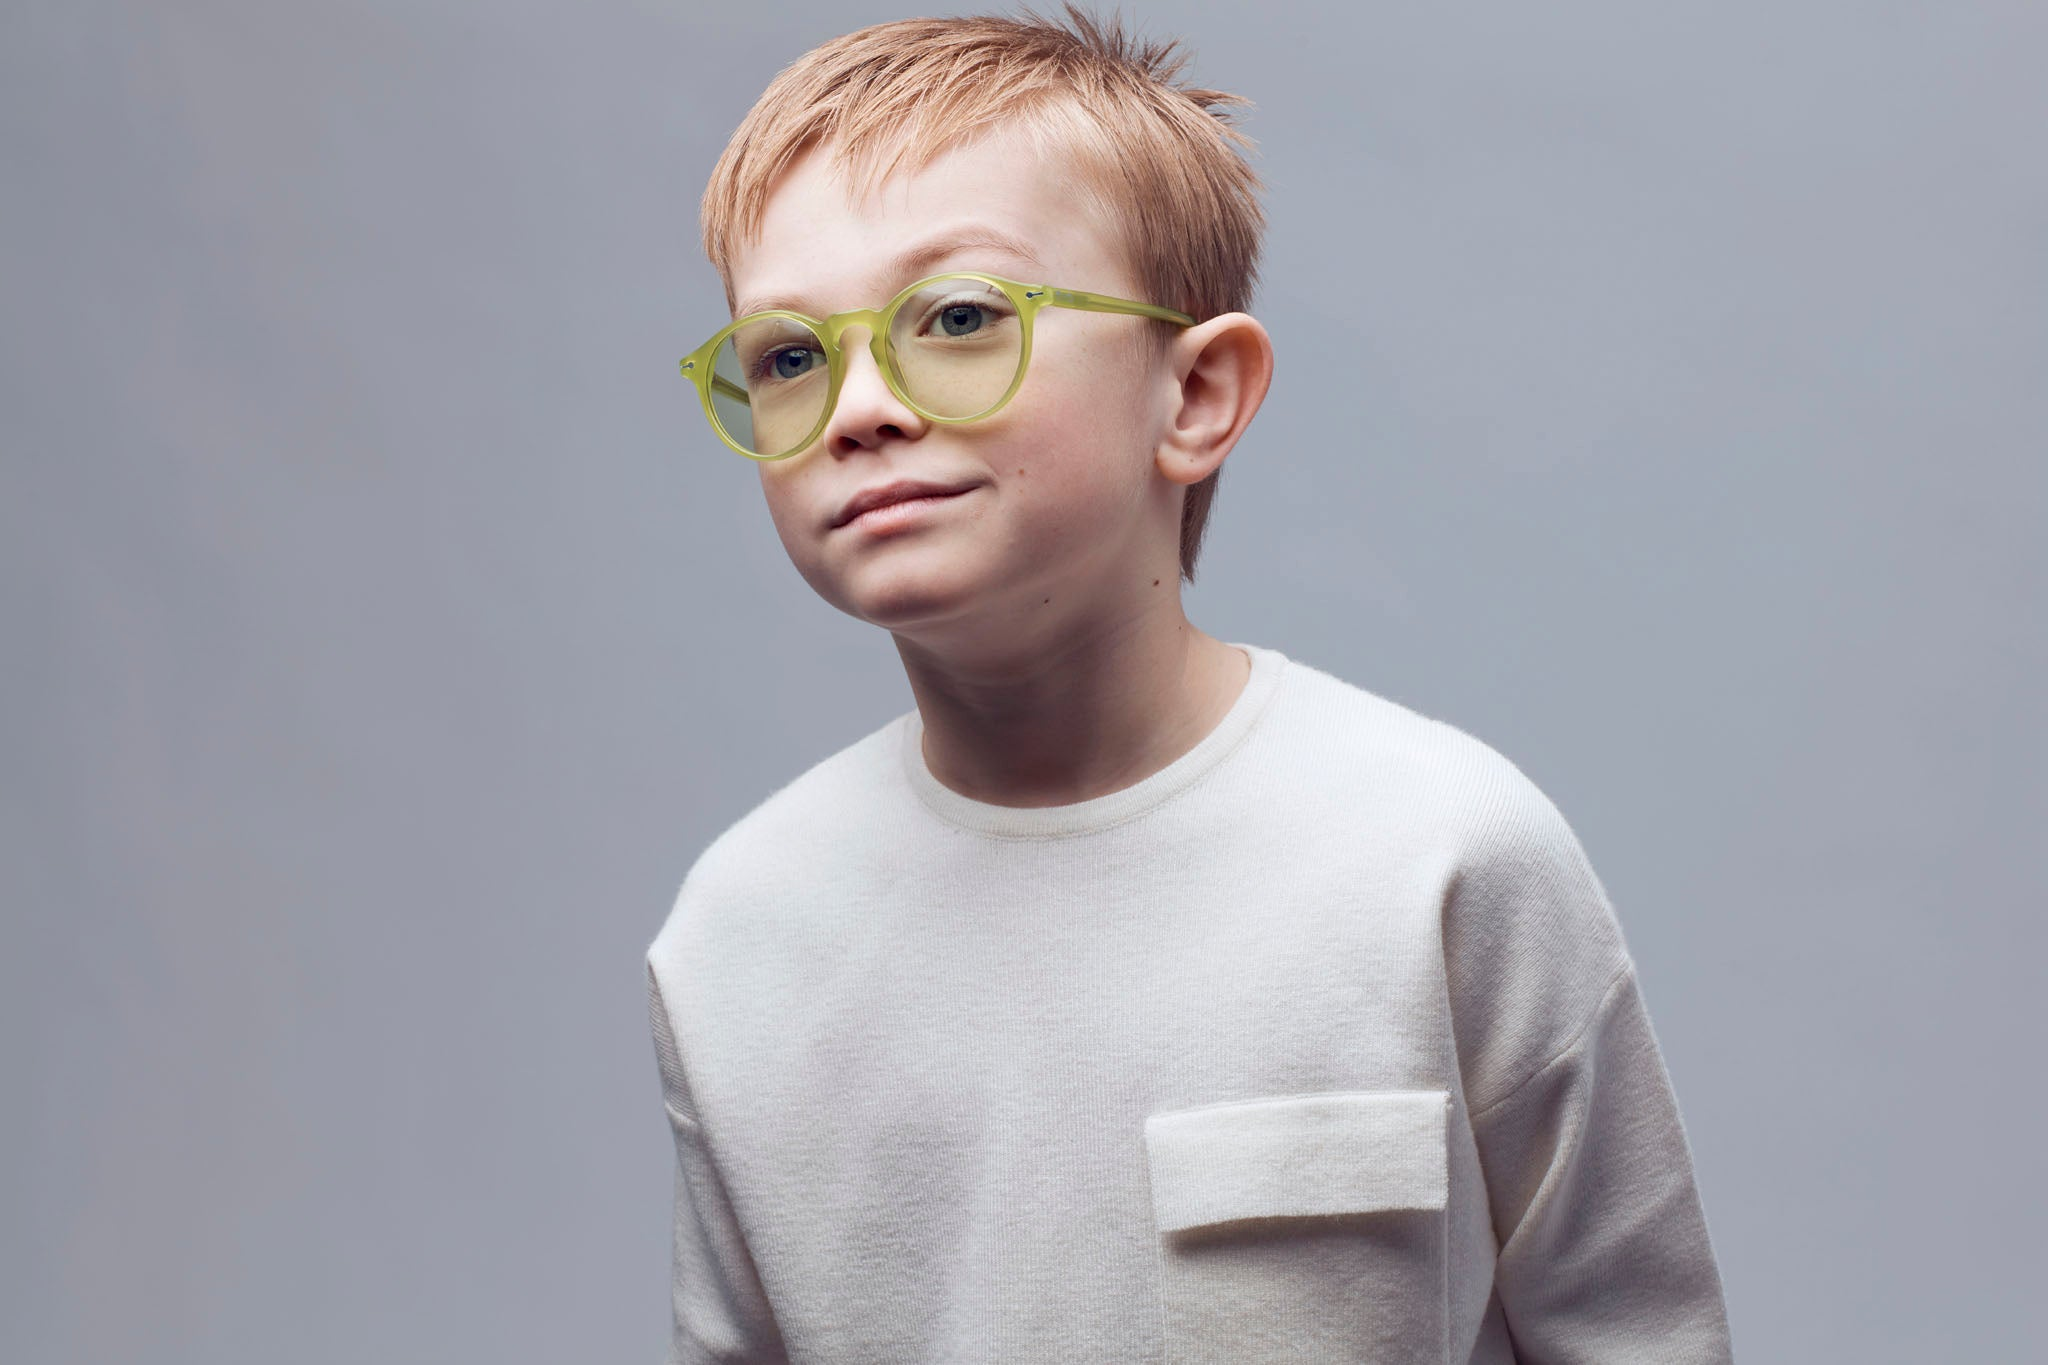 Sons_and_Daughters_Eyewear_Campaign_2019_Childrens_Kids_Sunglasses_Clark_Sun